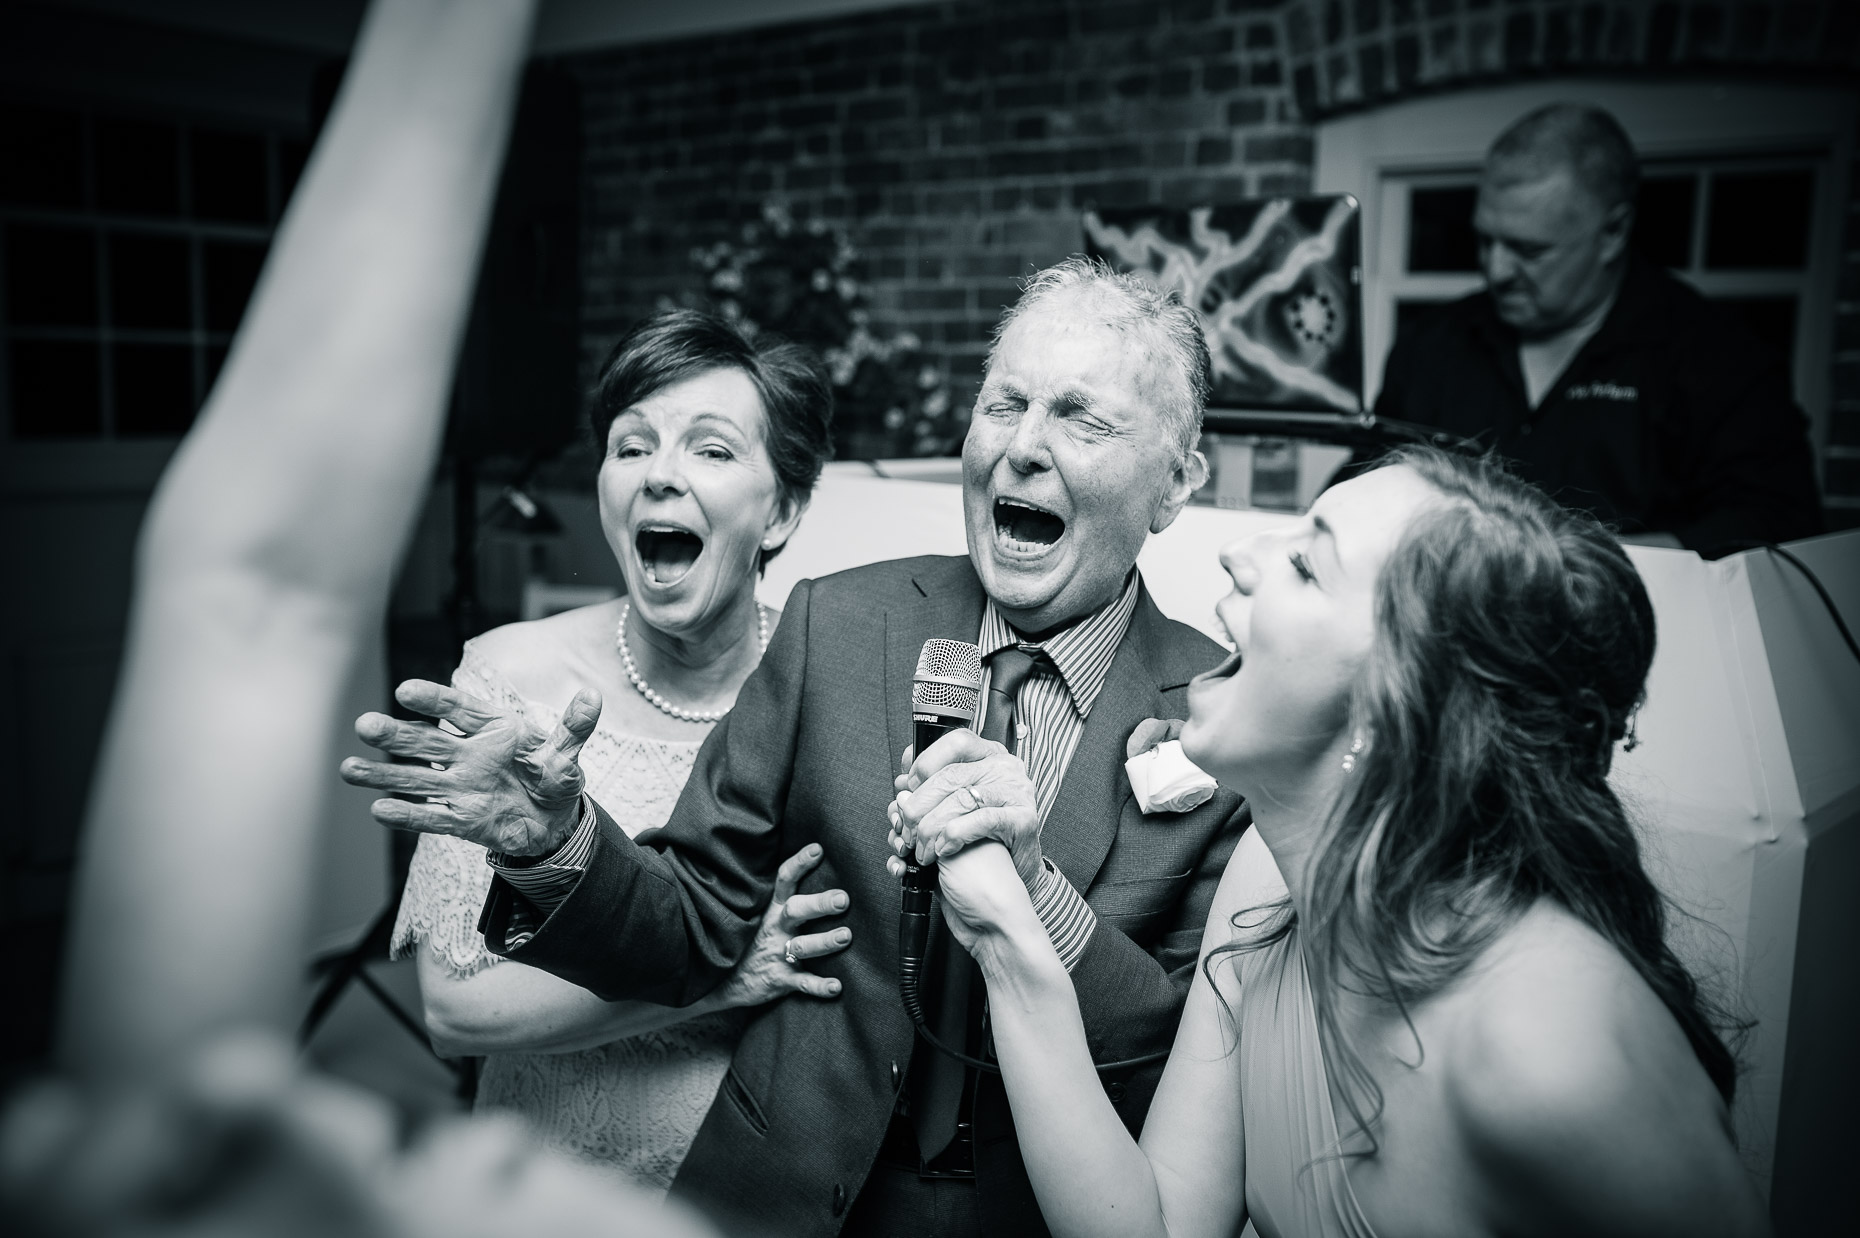 sopley-mill-christchurch-wedding-photography-male-singer-crooner-black-white-reportage-26